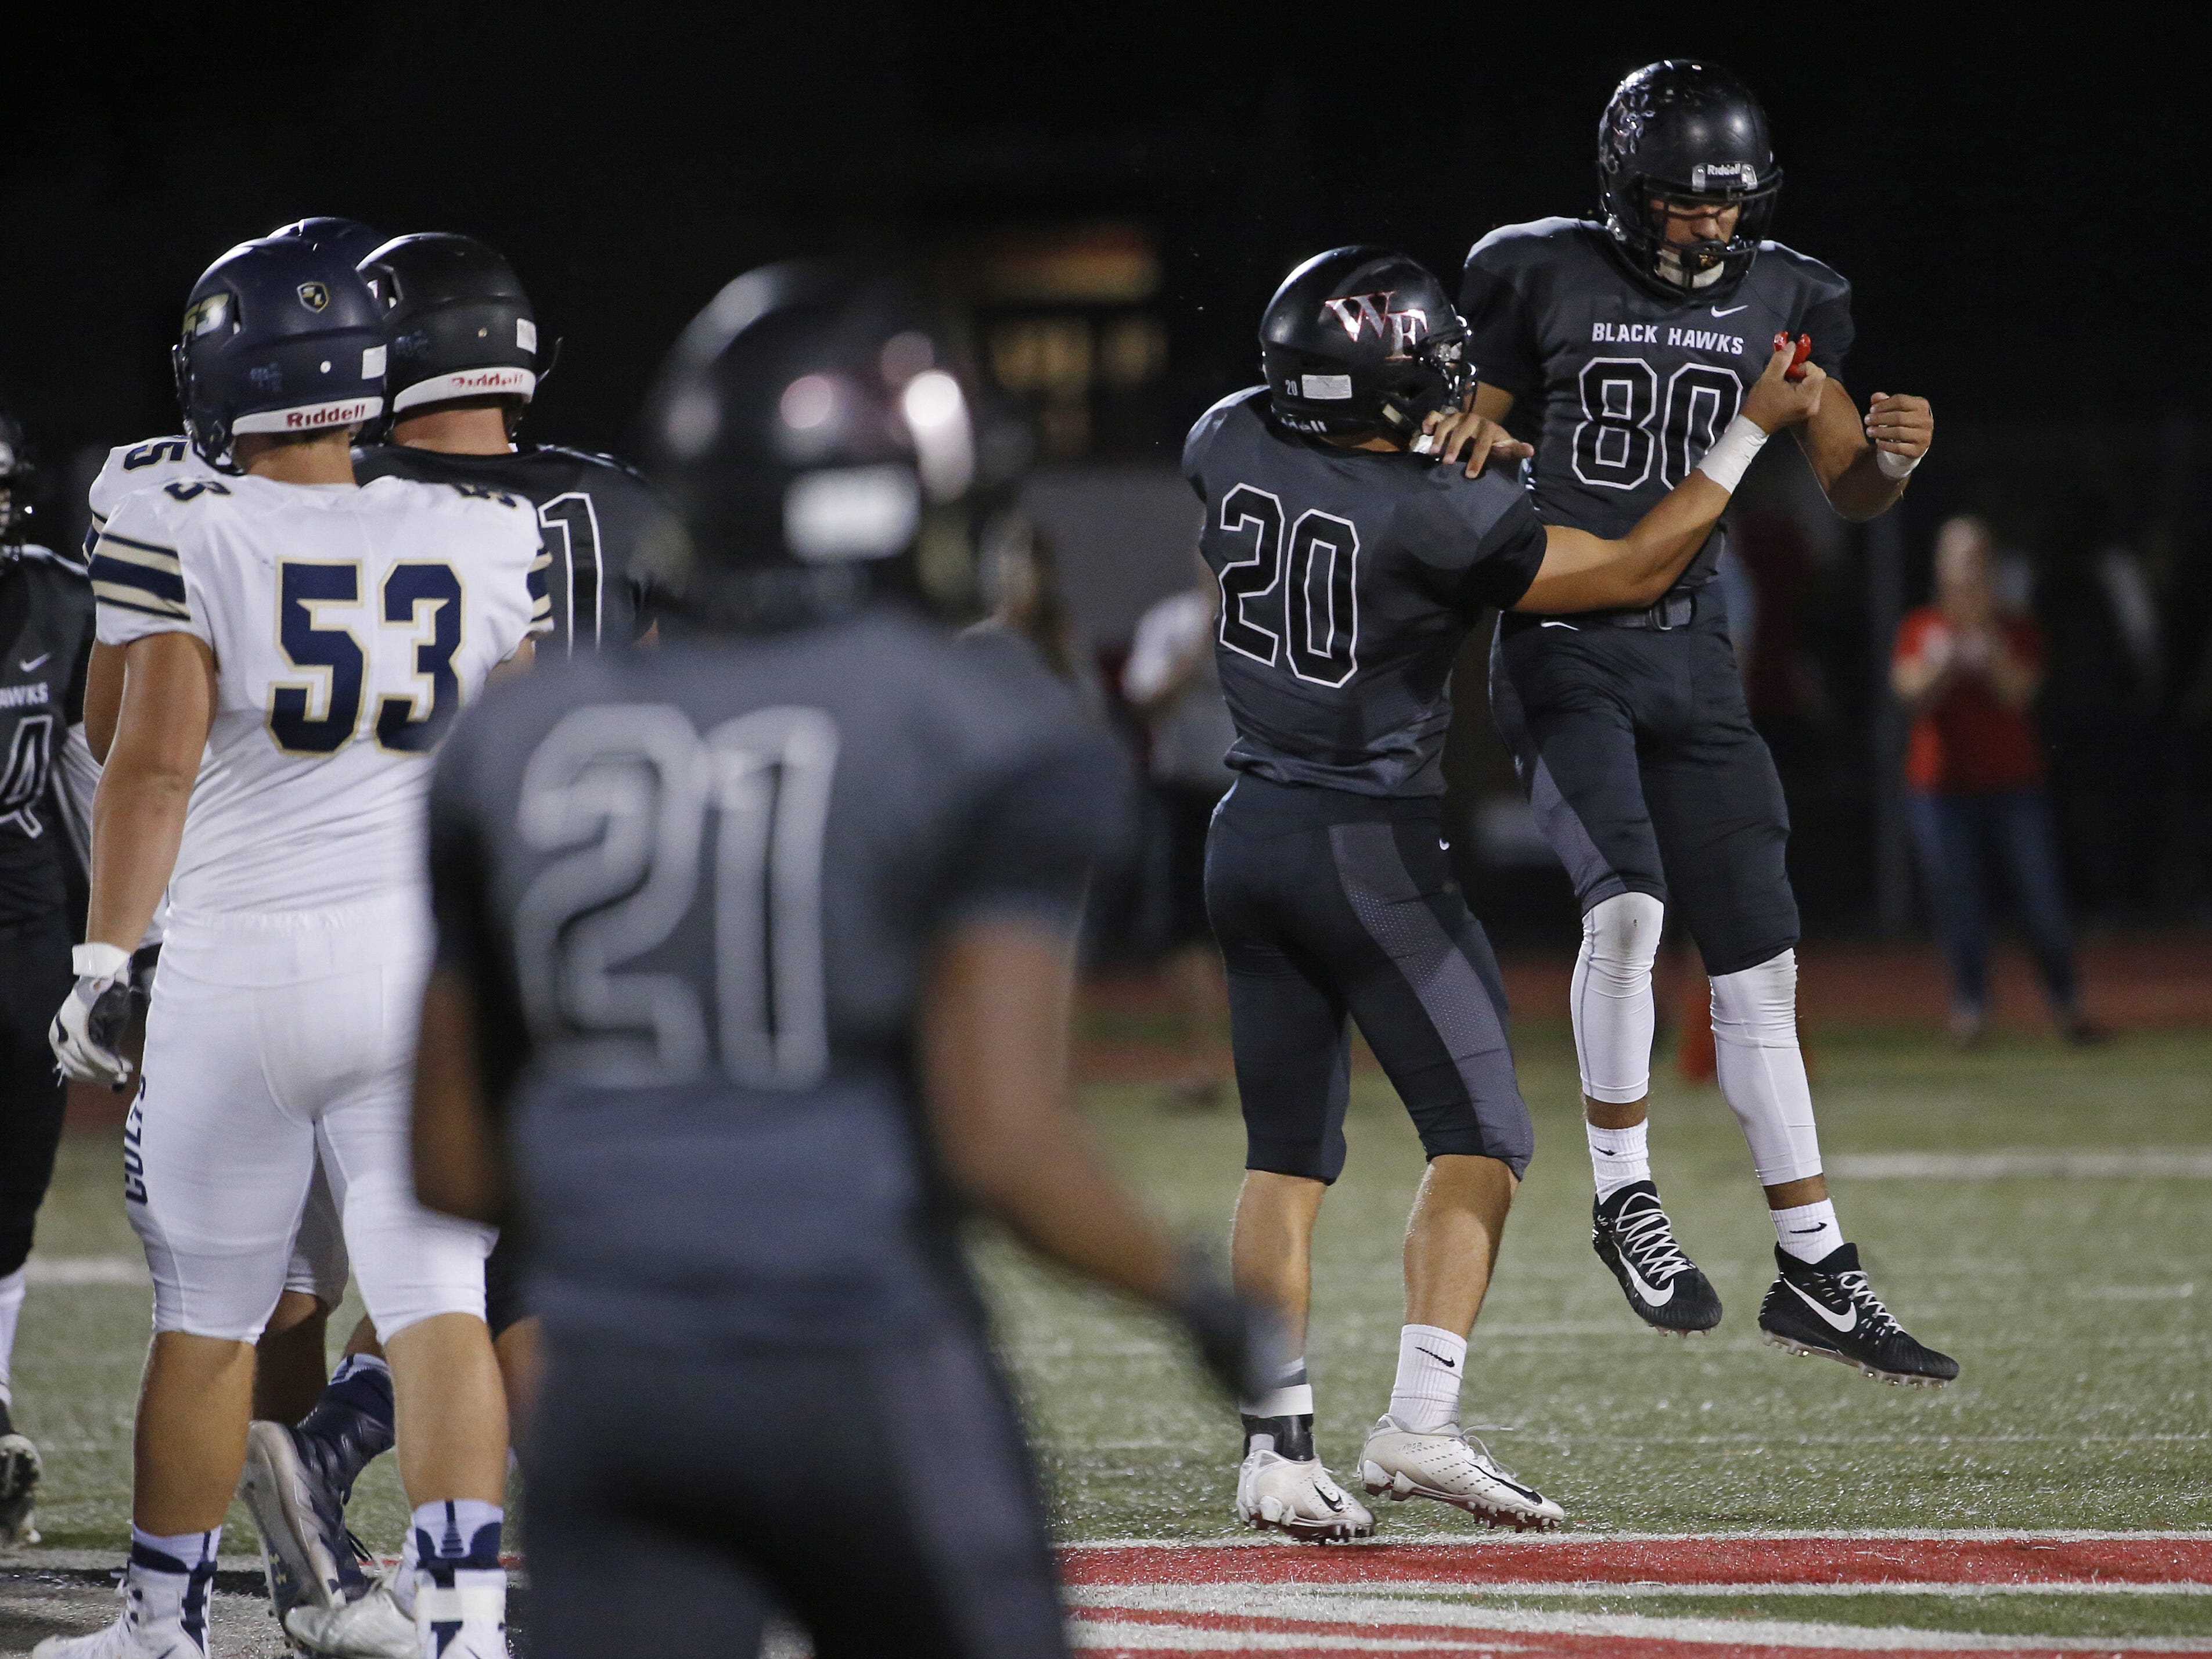 Williams Field's Nick Hernandez (80) and Trey Washburn (20) celebrate a sack against Casteel at Williams Field High School in Gilbert, Ariz. on Sept. 21, 2018.  #azhsfb